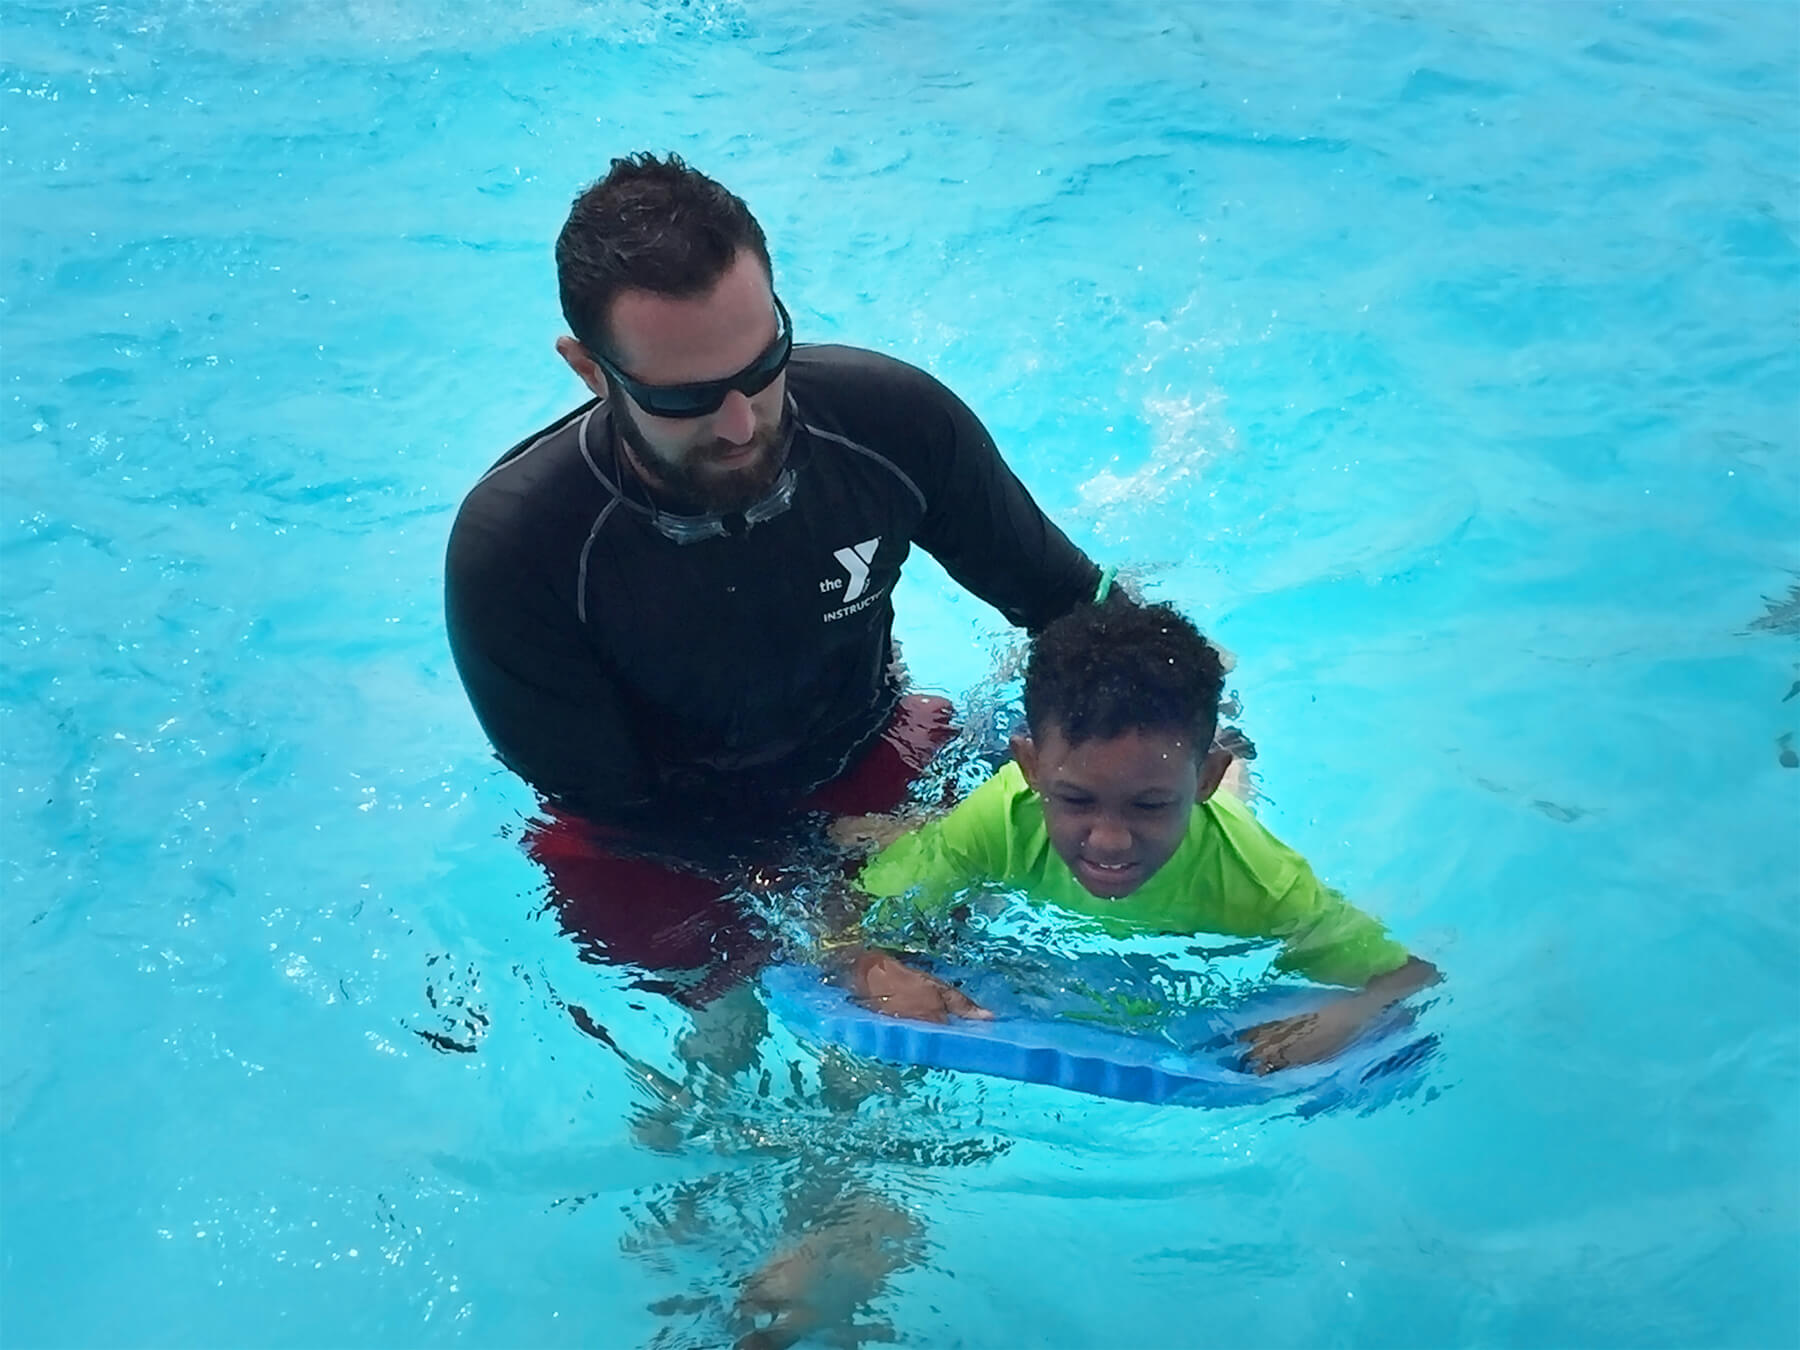 Swim Lesson at L.A. Lee YMCA/ Mizell Community Center in Fort Lauderdale